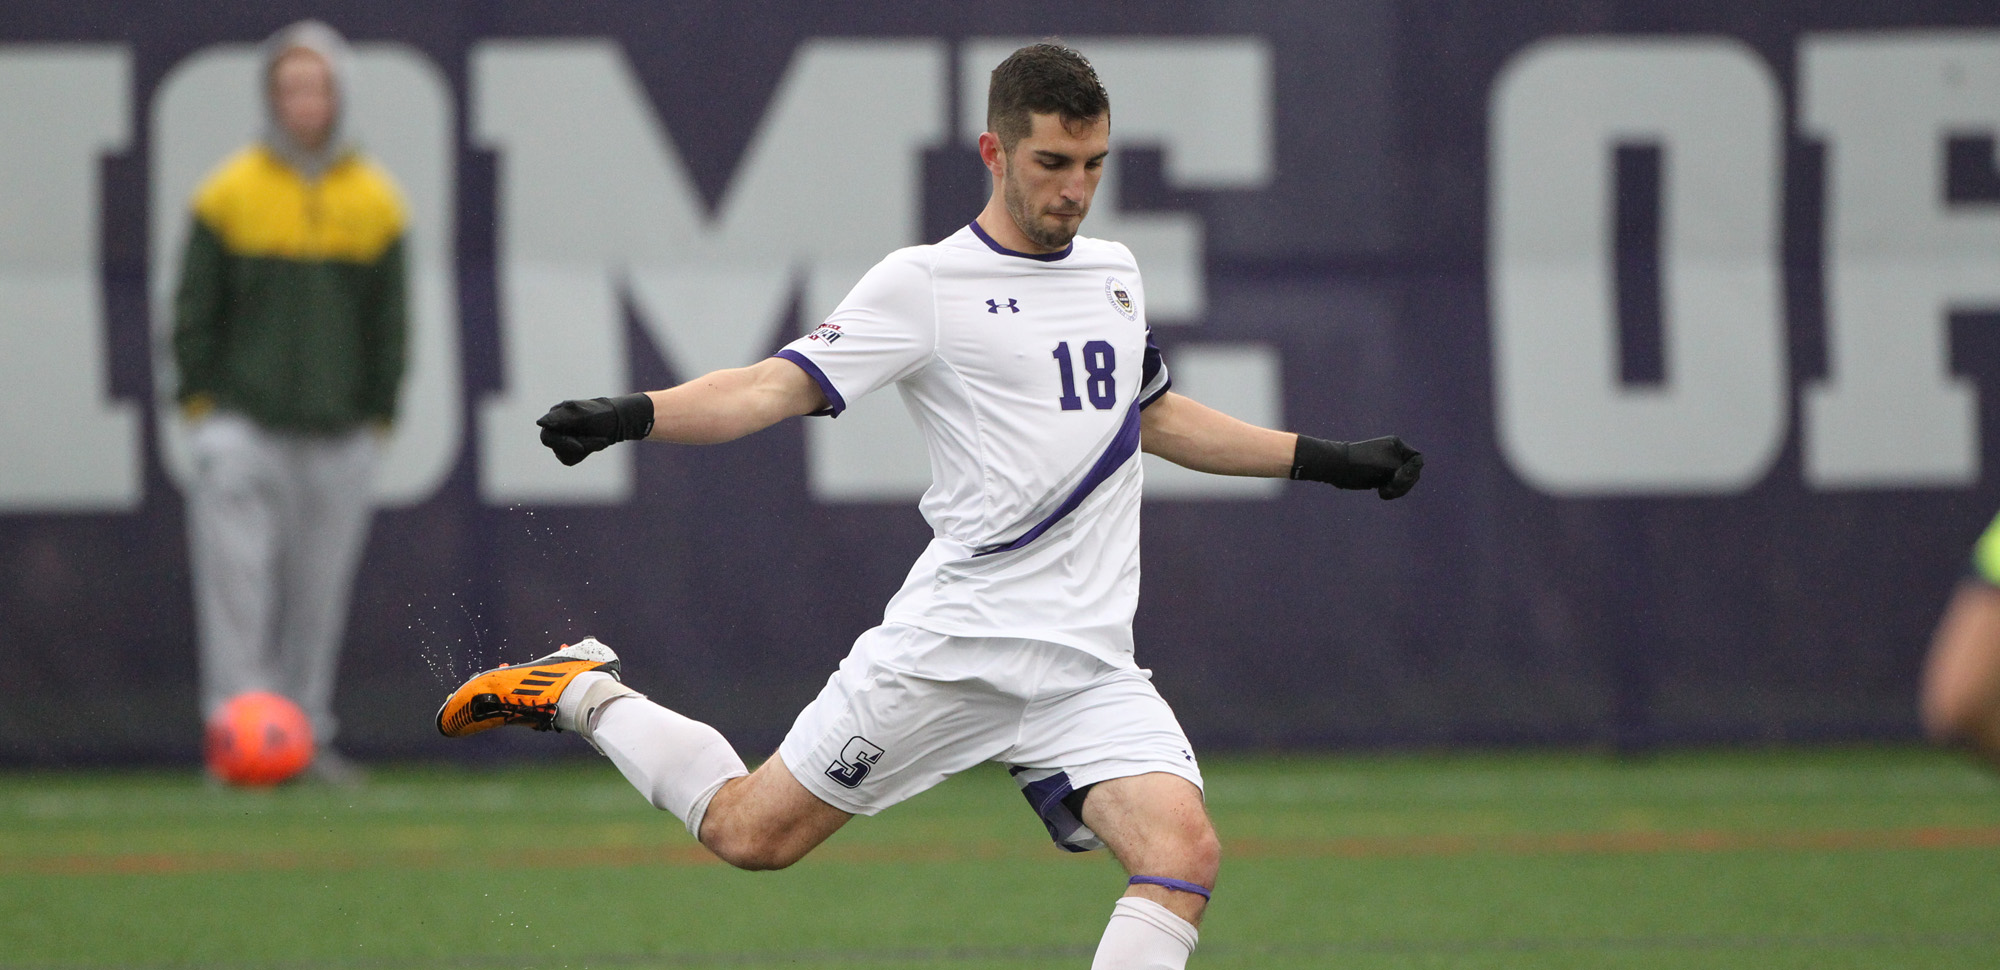 Senior Michael McKenna scored the first goal of his career in the Royals' win on Saturday.